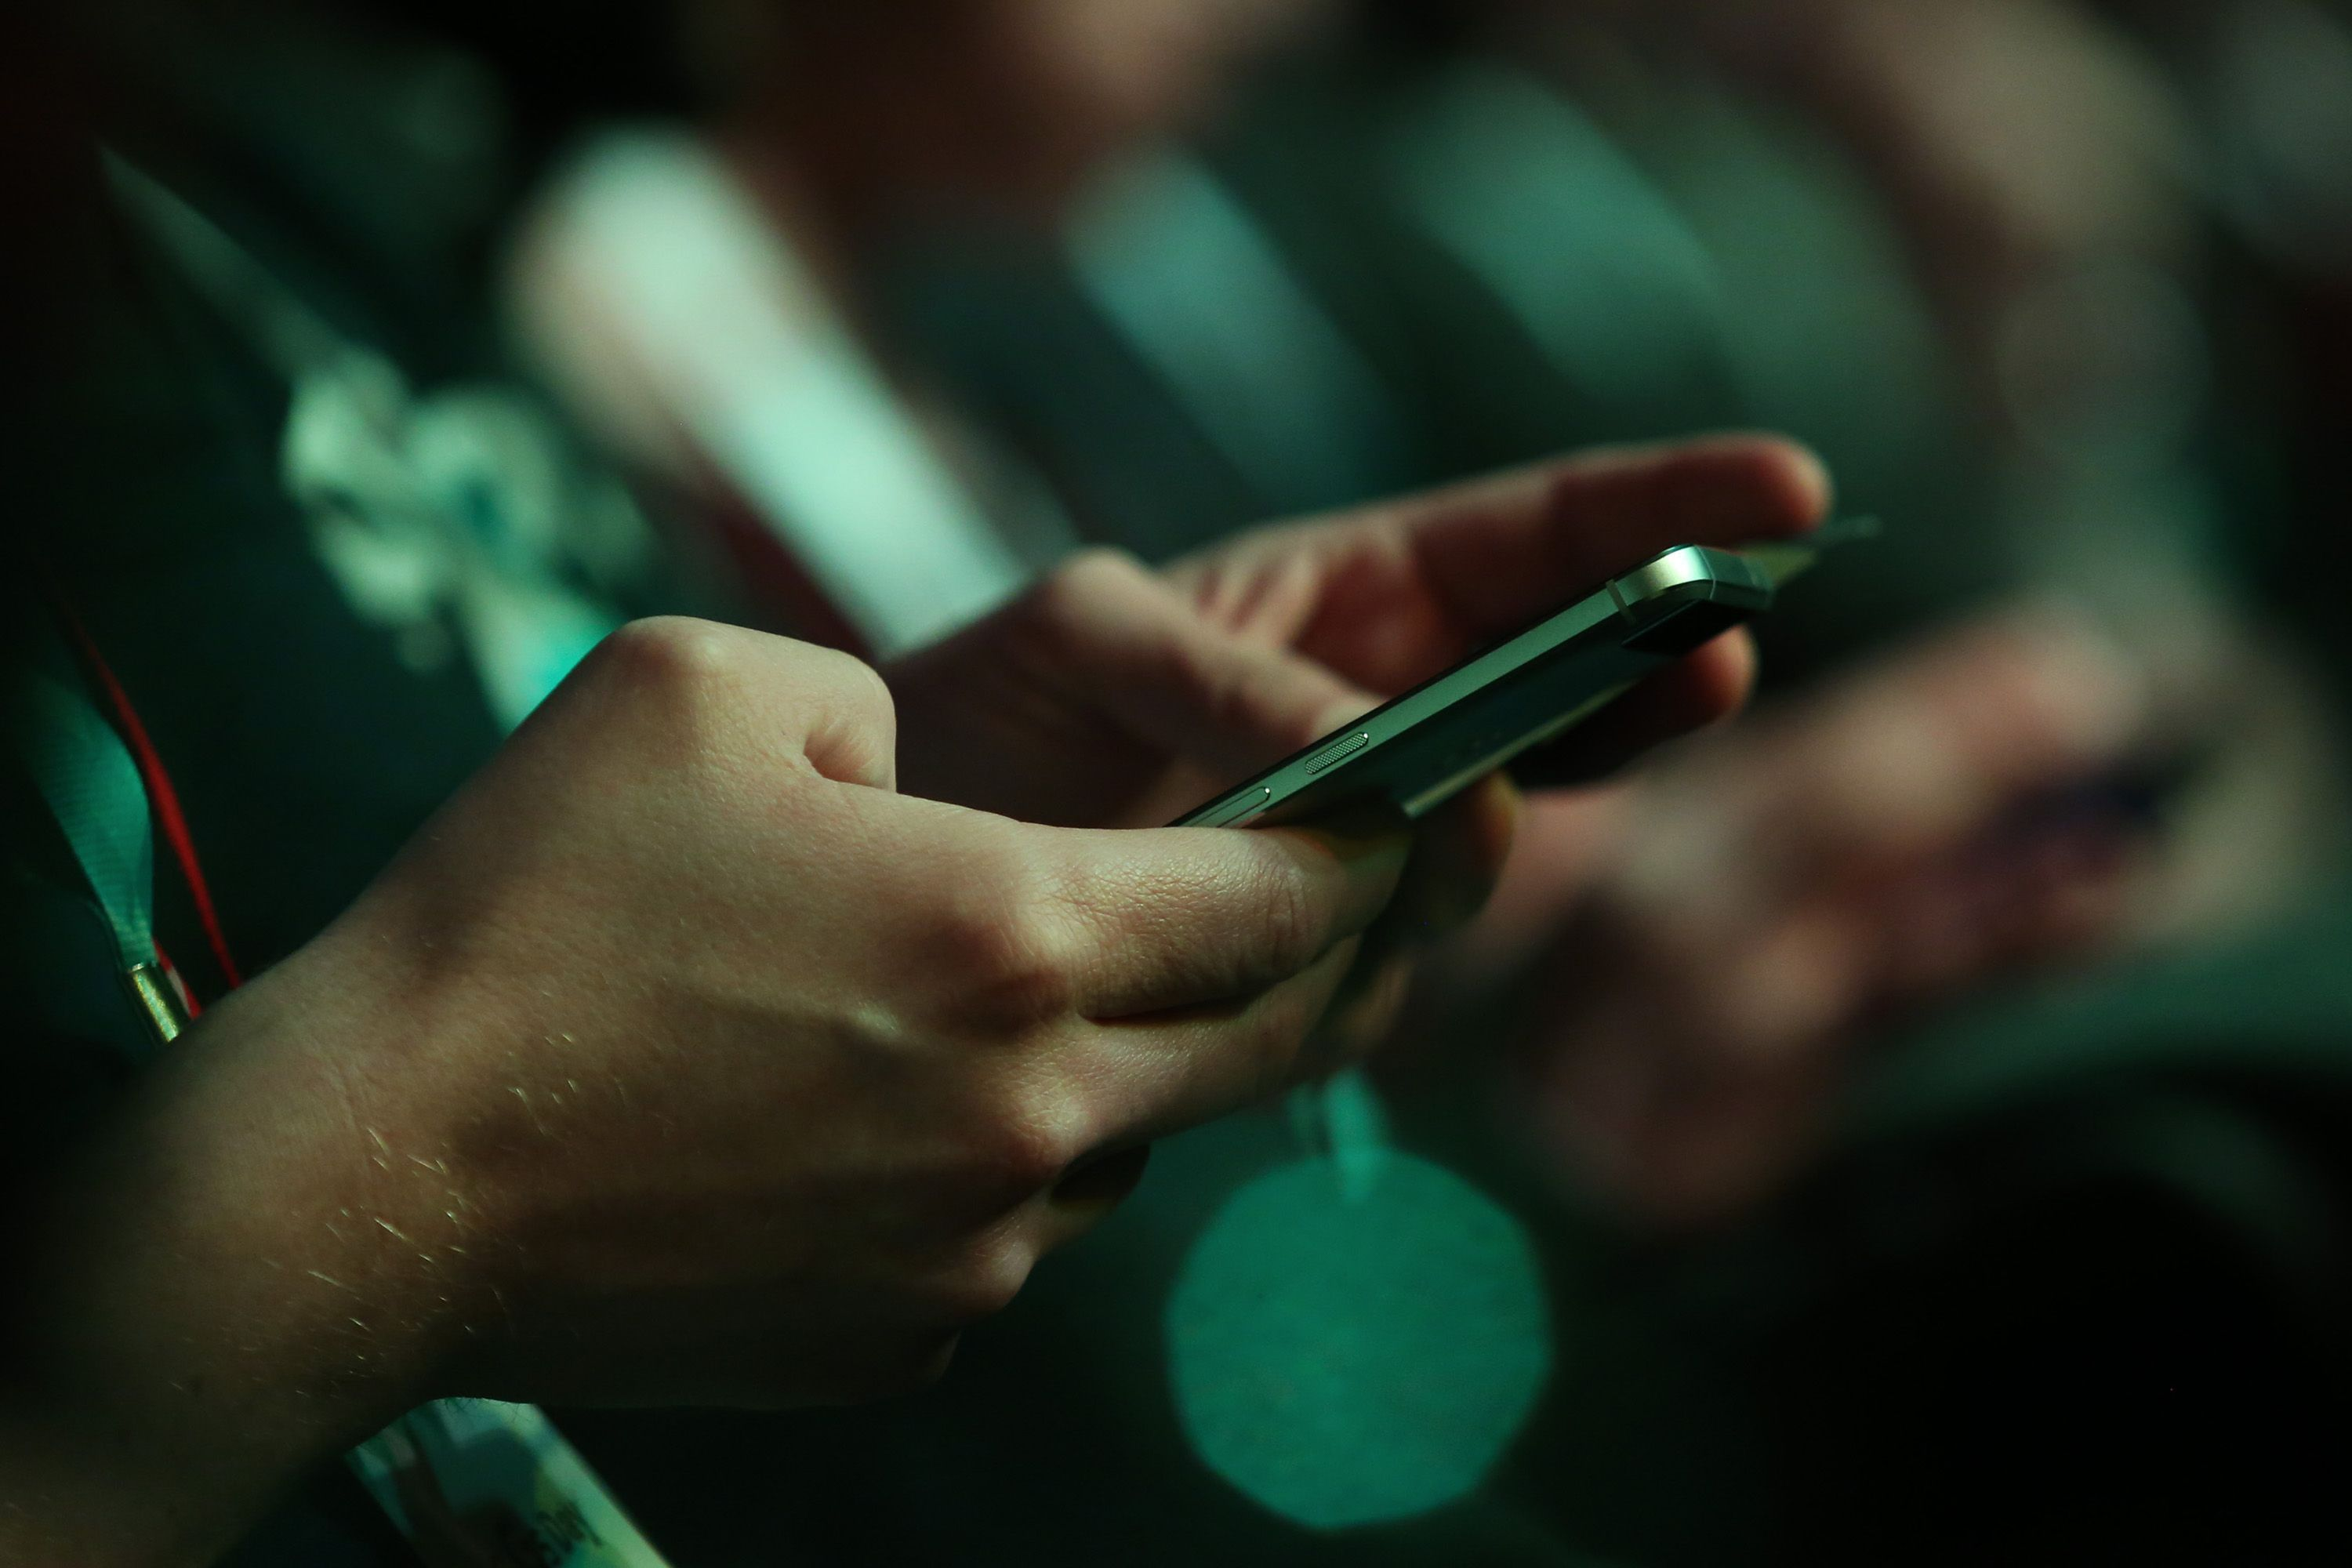 A man uses a mobile device.